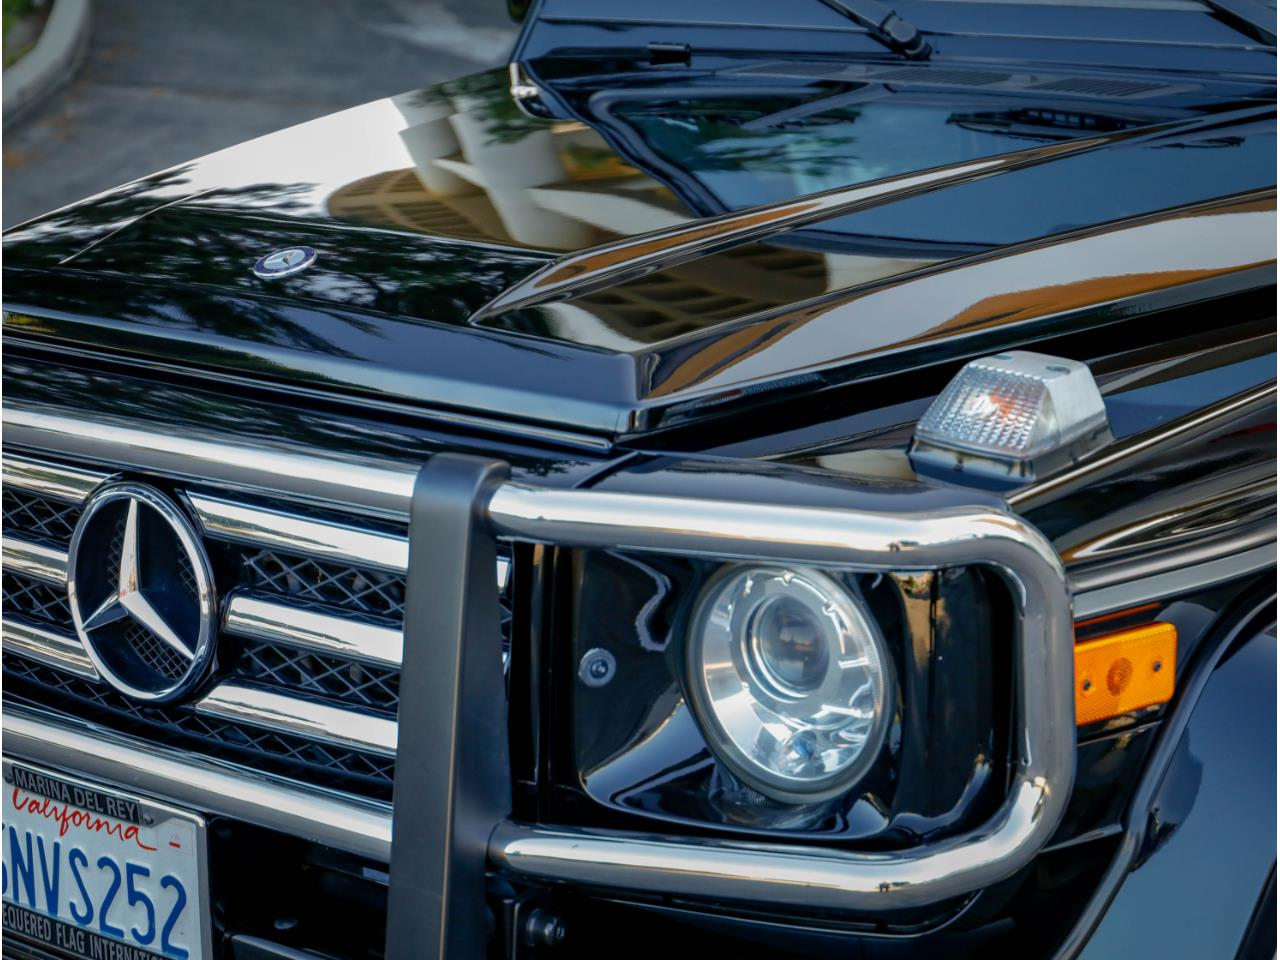 2011 Mercedes-Benz G550 for sale in Marina Del Rey, CA – photo 14